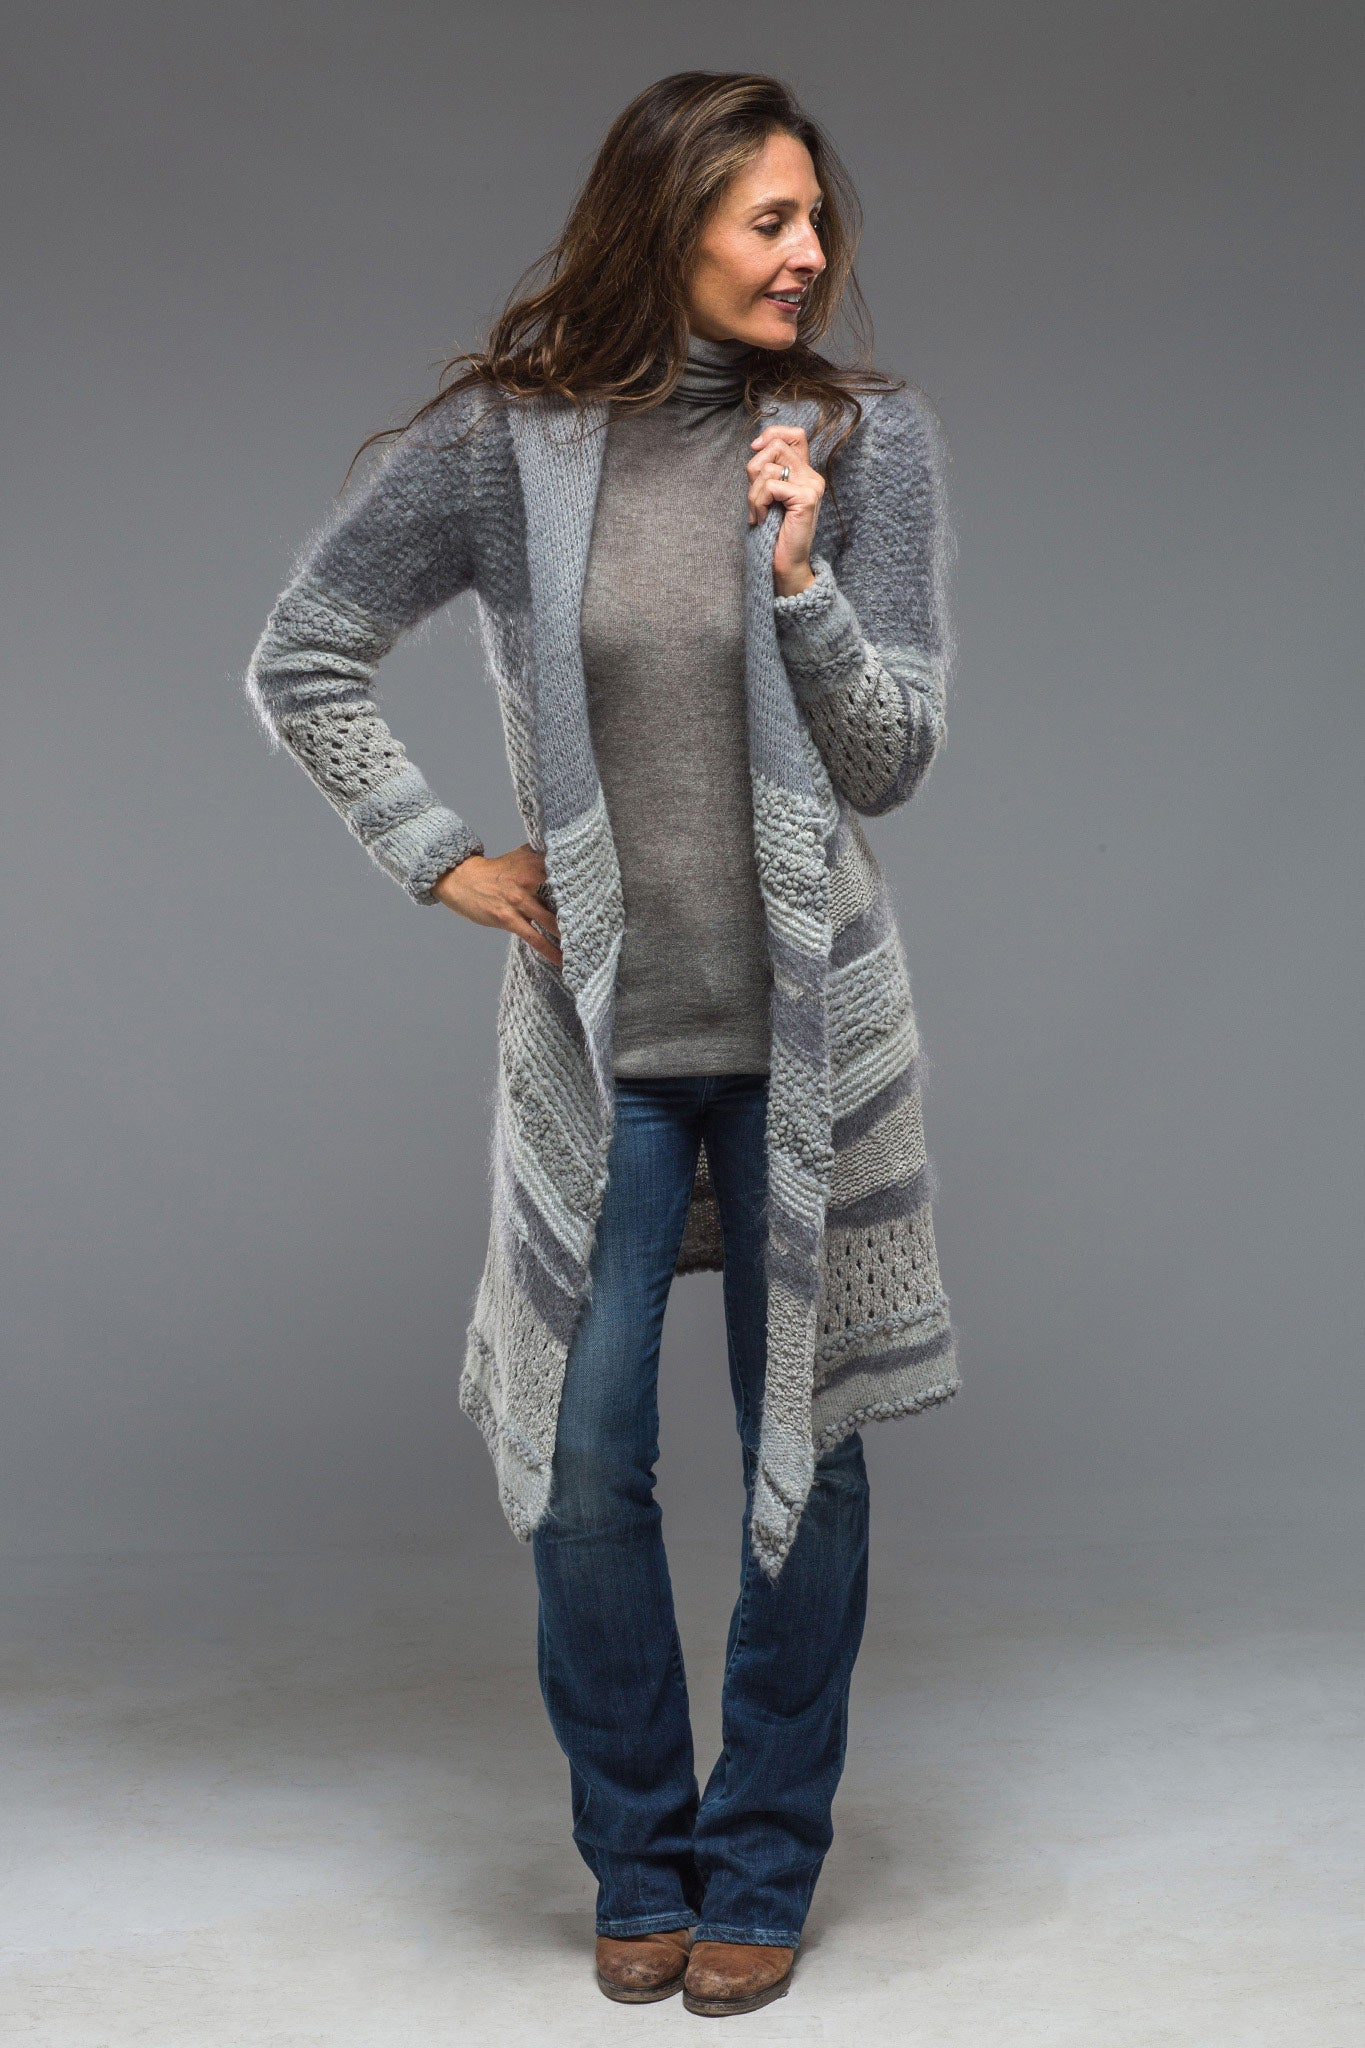 Atacama Long Hooded Sweater in Ice (4286540546141)